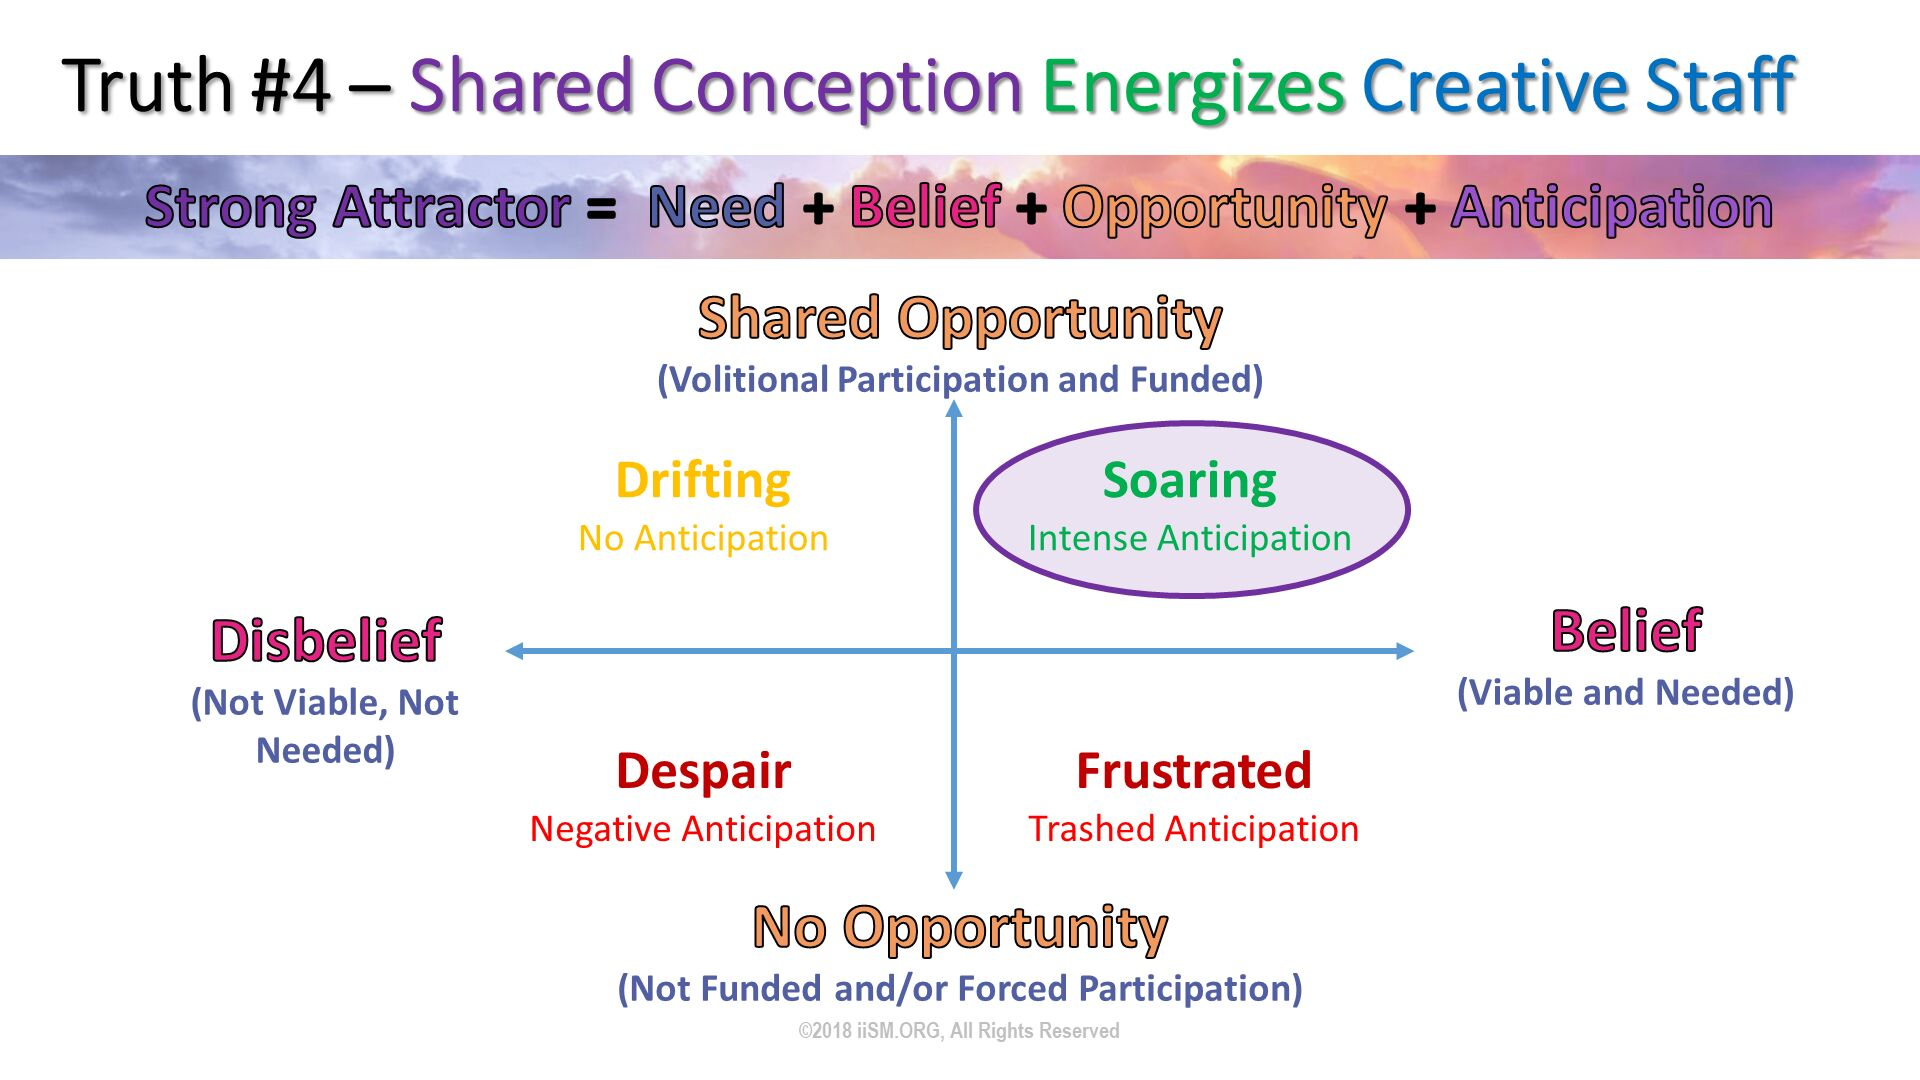 Truth #4 – Shared Conception Energizes Creative Staff. ©2018 iiSM.ORG, All Rights Reserved. No Opportunity(Not Funded and/or Forced Participation). Disbelief(Not Viable, Not Needed). Belief(Viable and Needed). Shared Opportunity(Volitional Participation and Funded).